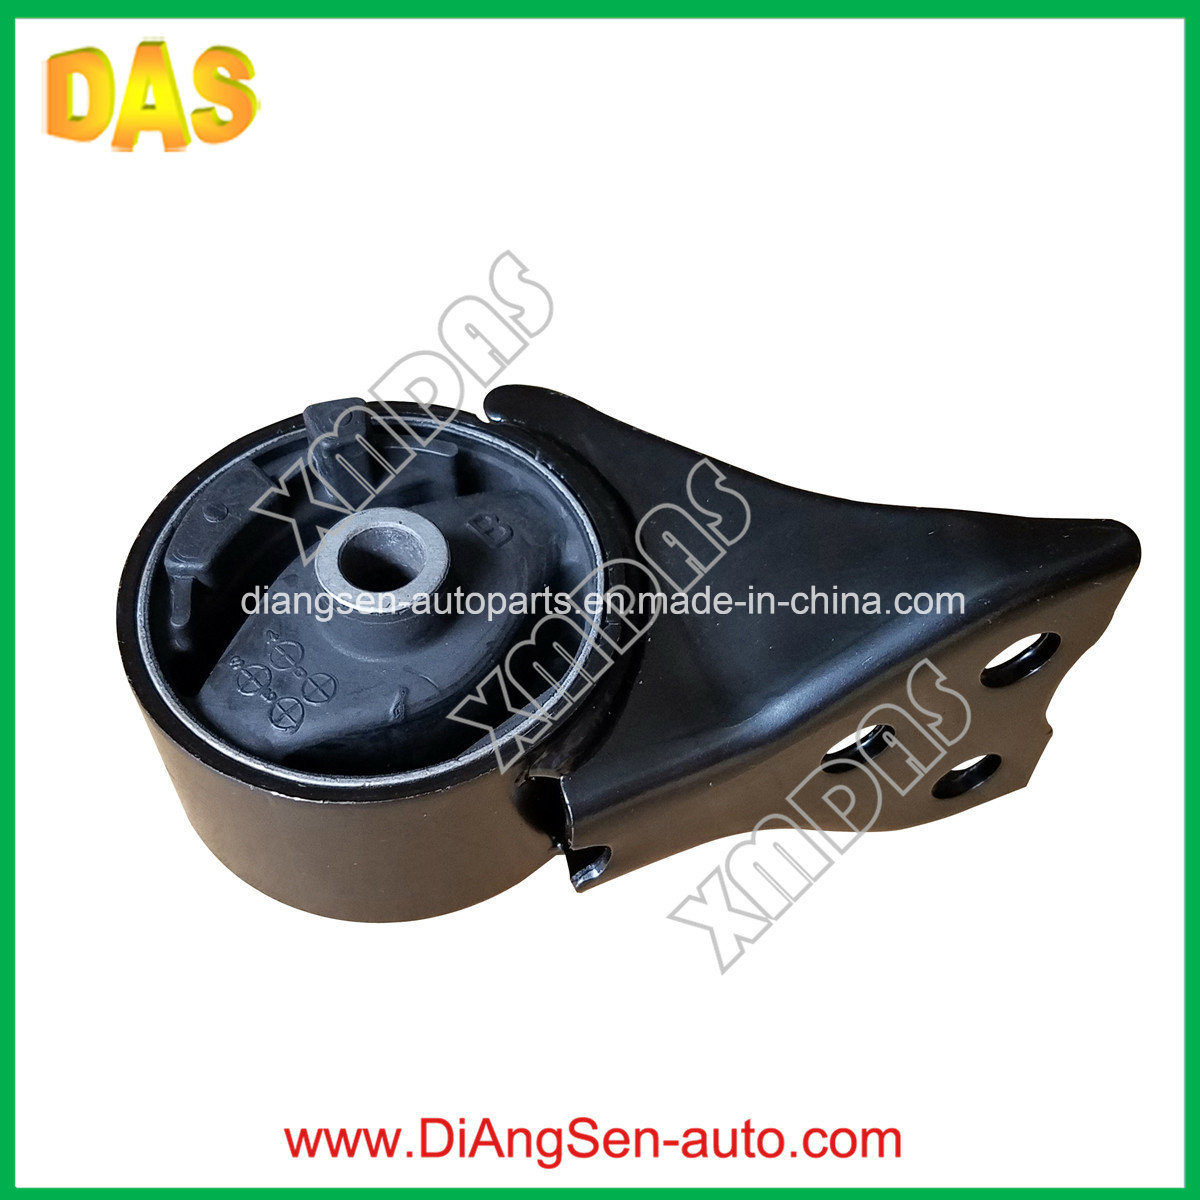 hight resolution of japanese car parts engine mount for mazda protege 95 98 bc1d 39